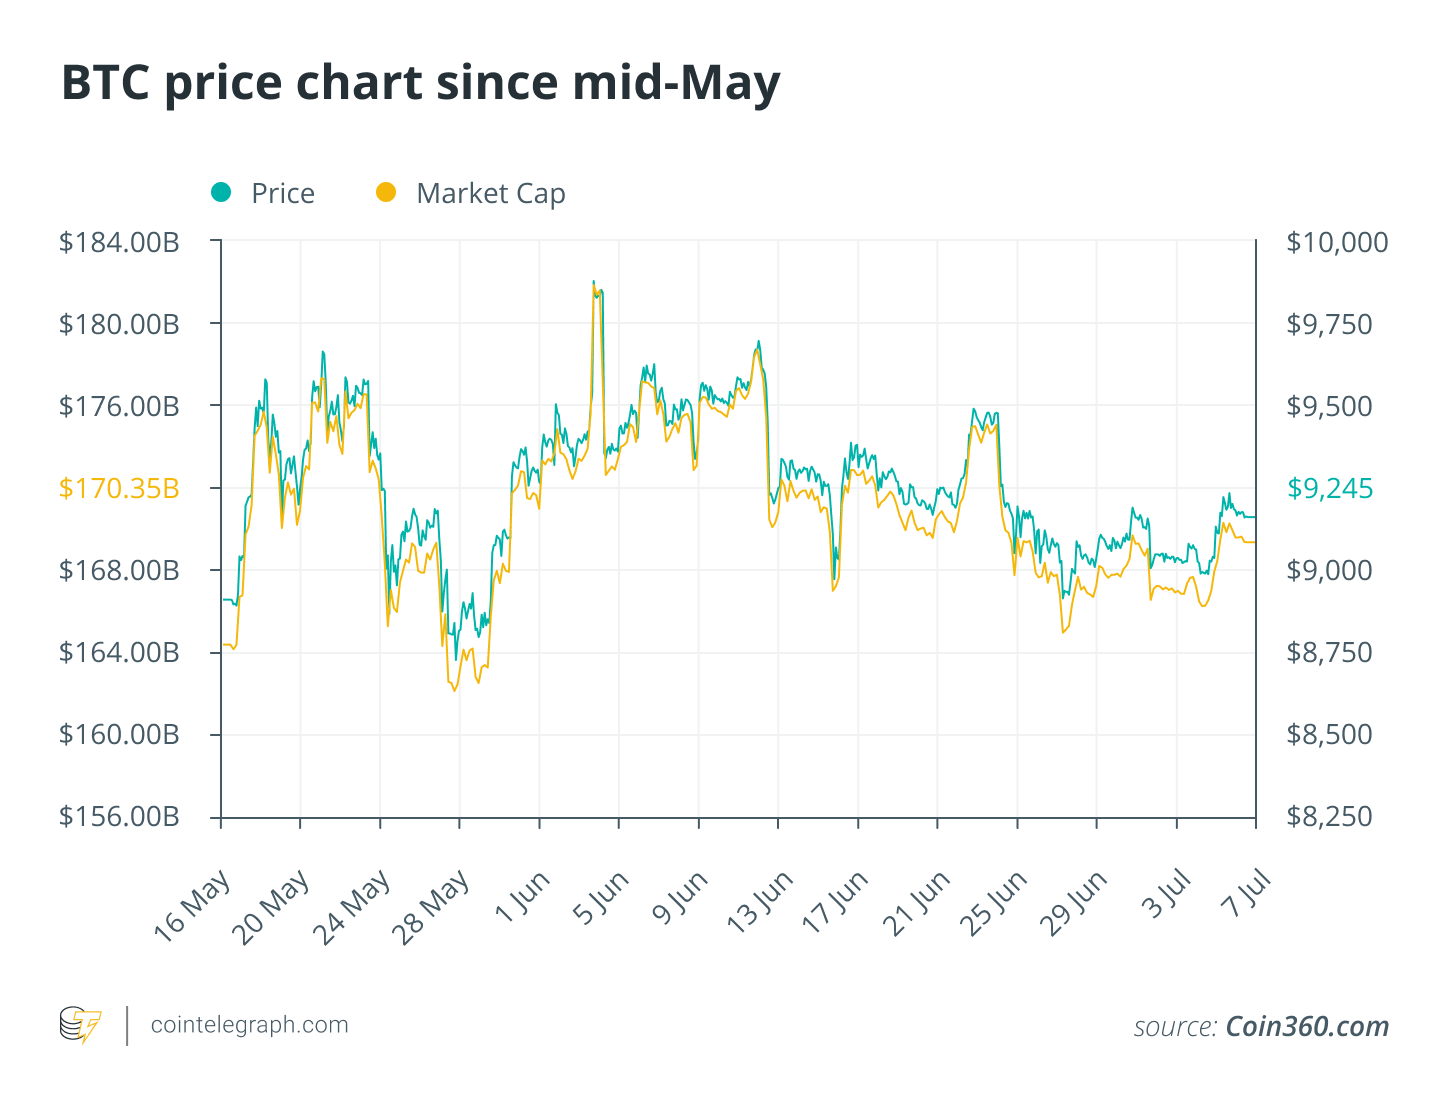 BTC price chart since mid-May